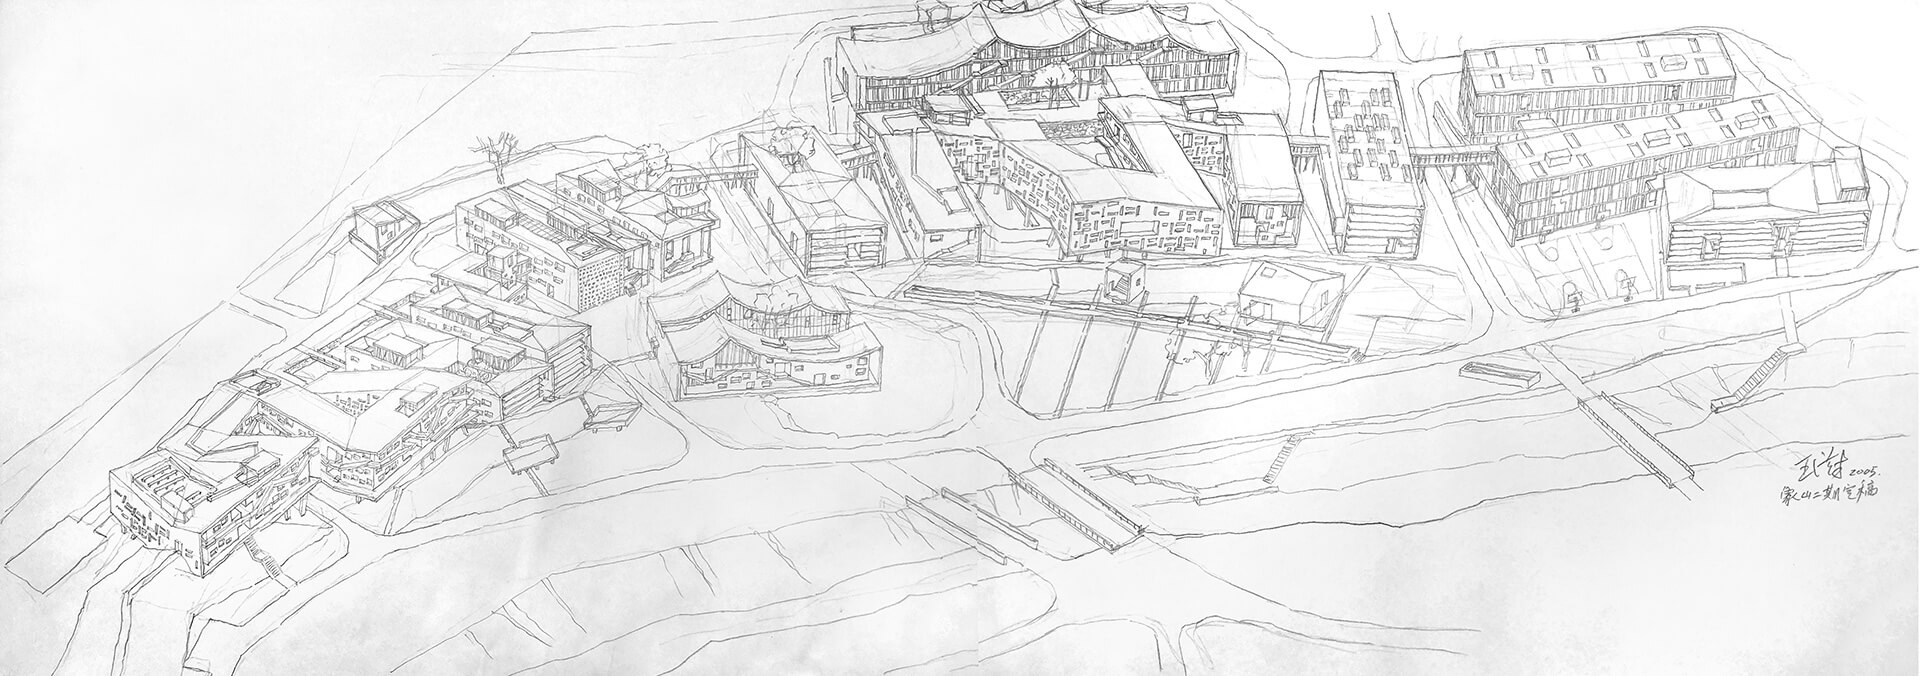 Xiangshan Campus, China Academy of Art, Hangzhou, Phase II, 2004 - Sketch drawn by Wang Shu from left to right without a stop over a period of four hours | Vladimir Belogolovsky in conversation with architect WANG Shu | STIRworld